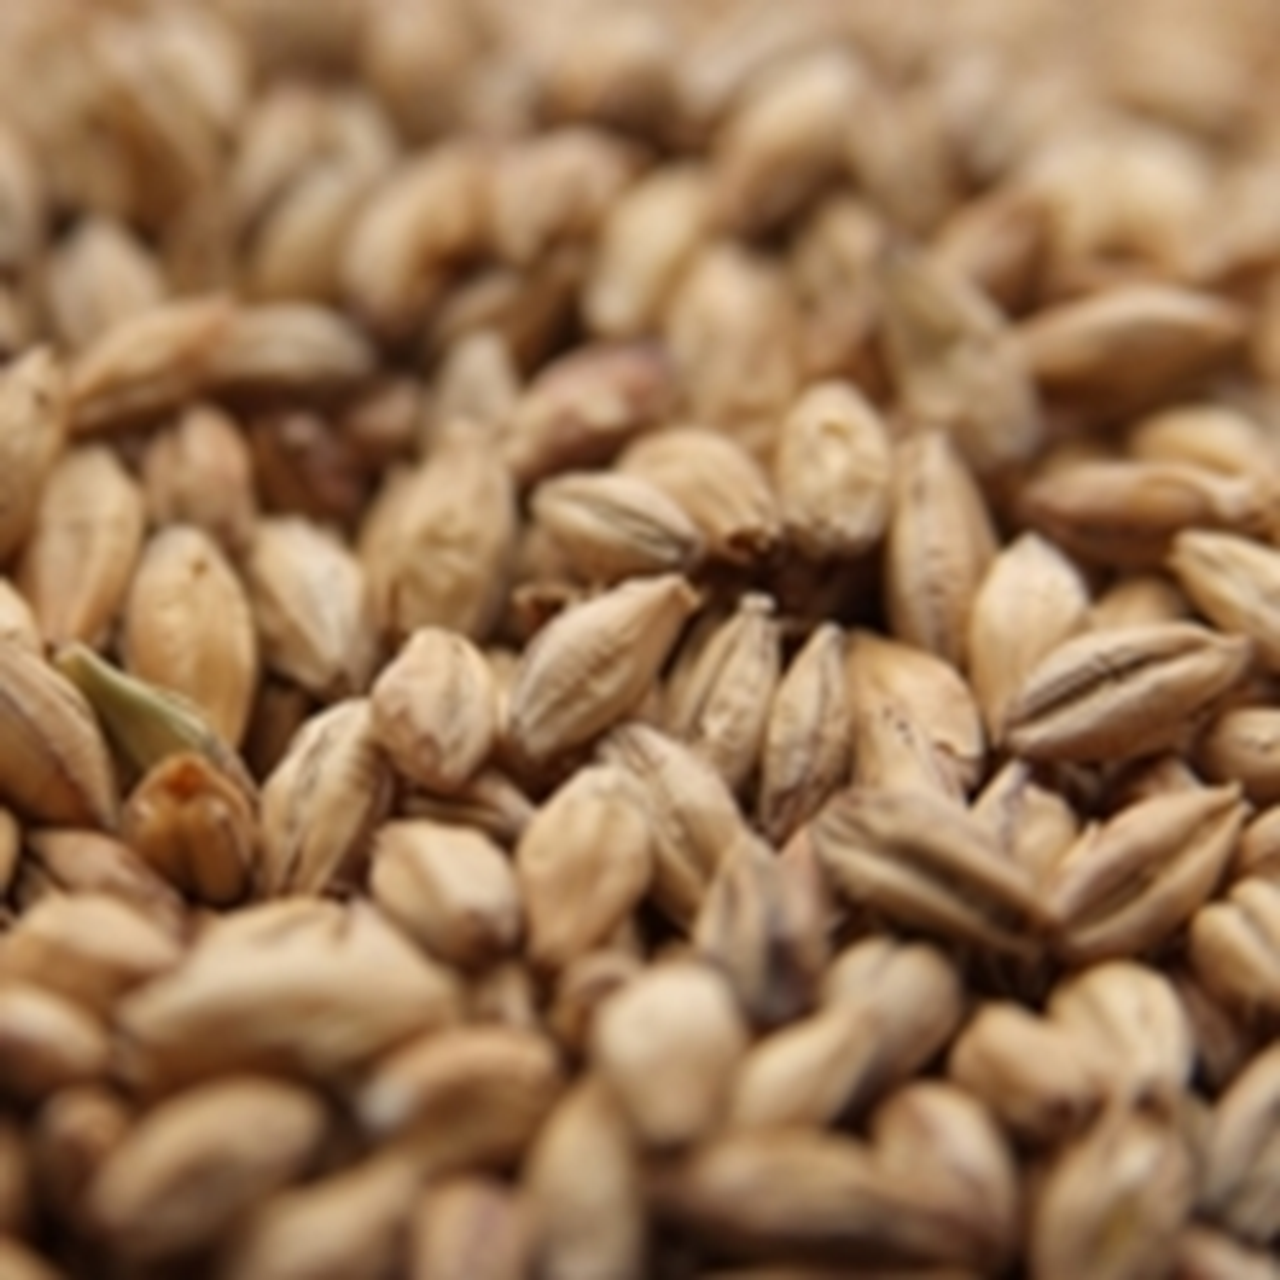 Malted & Unmalted Grains